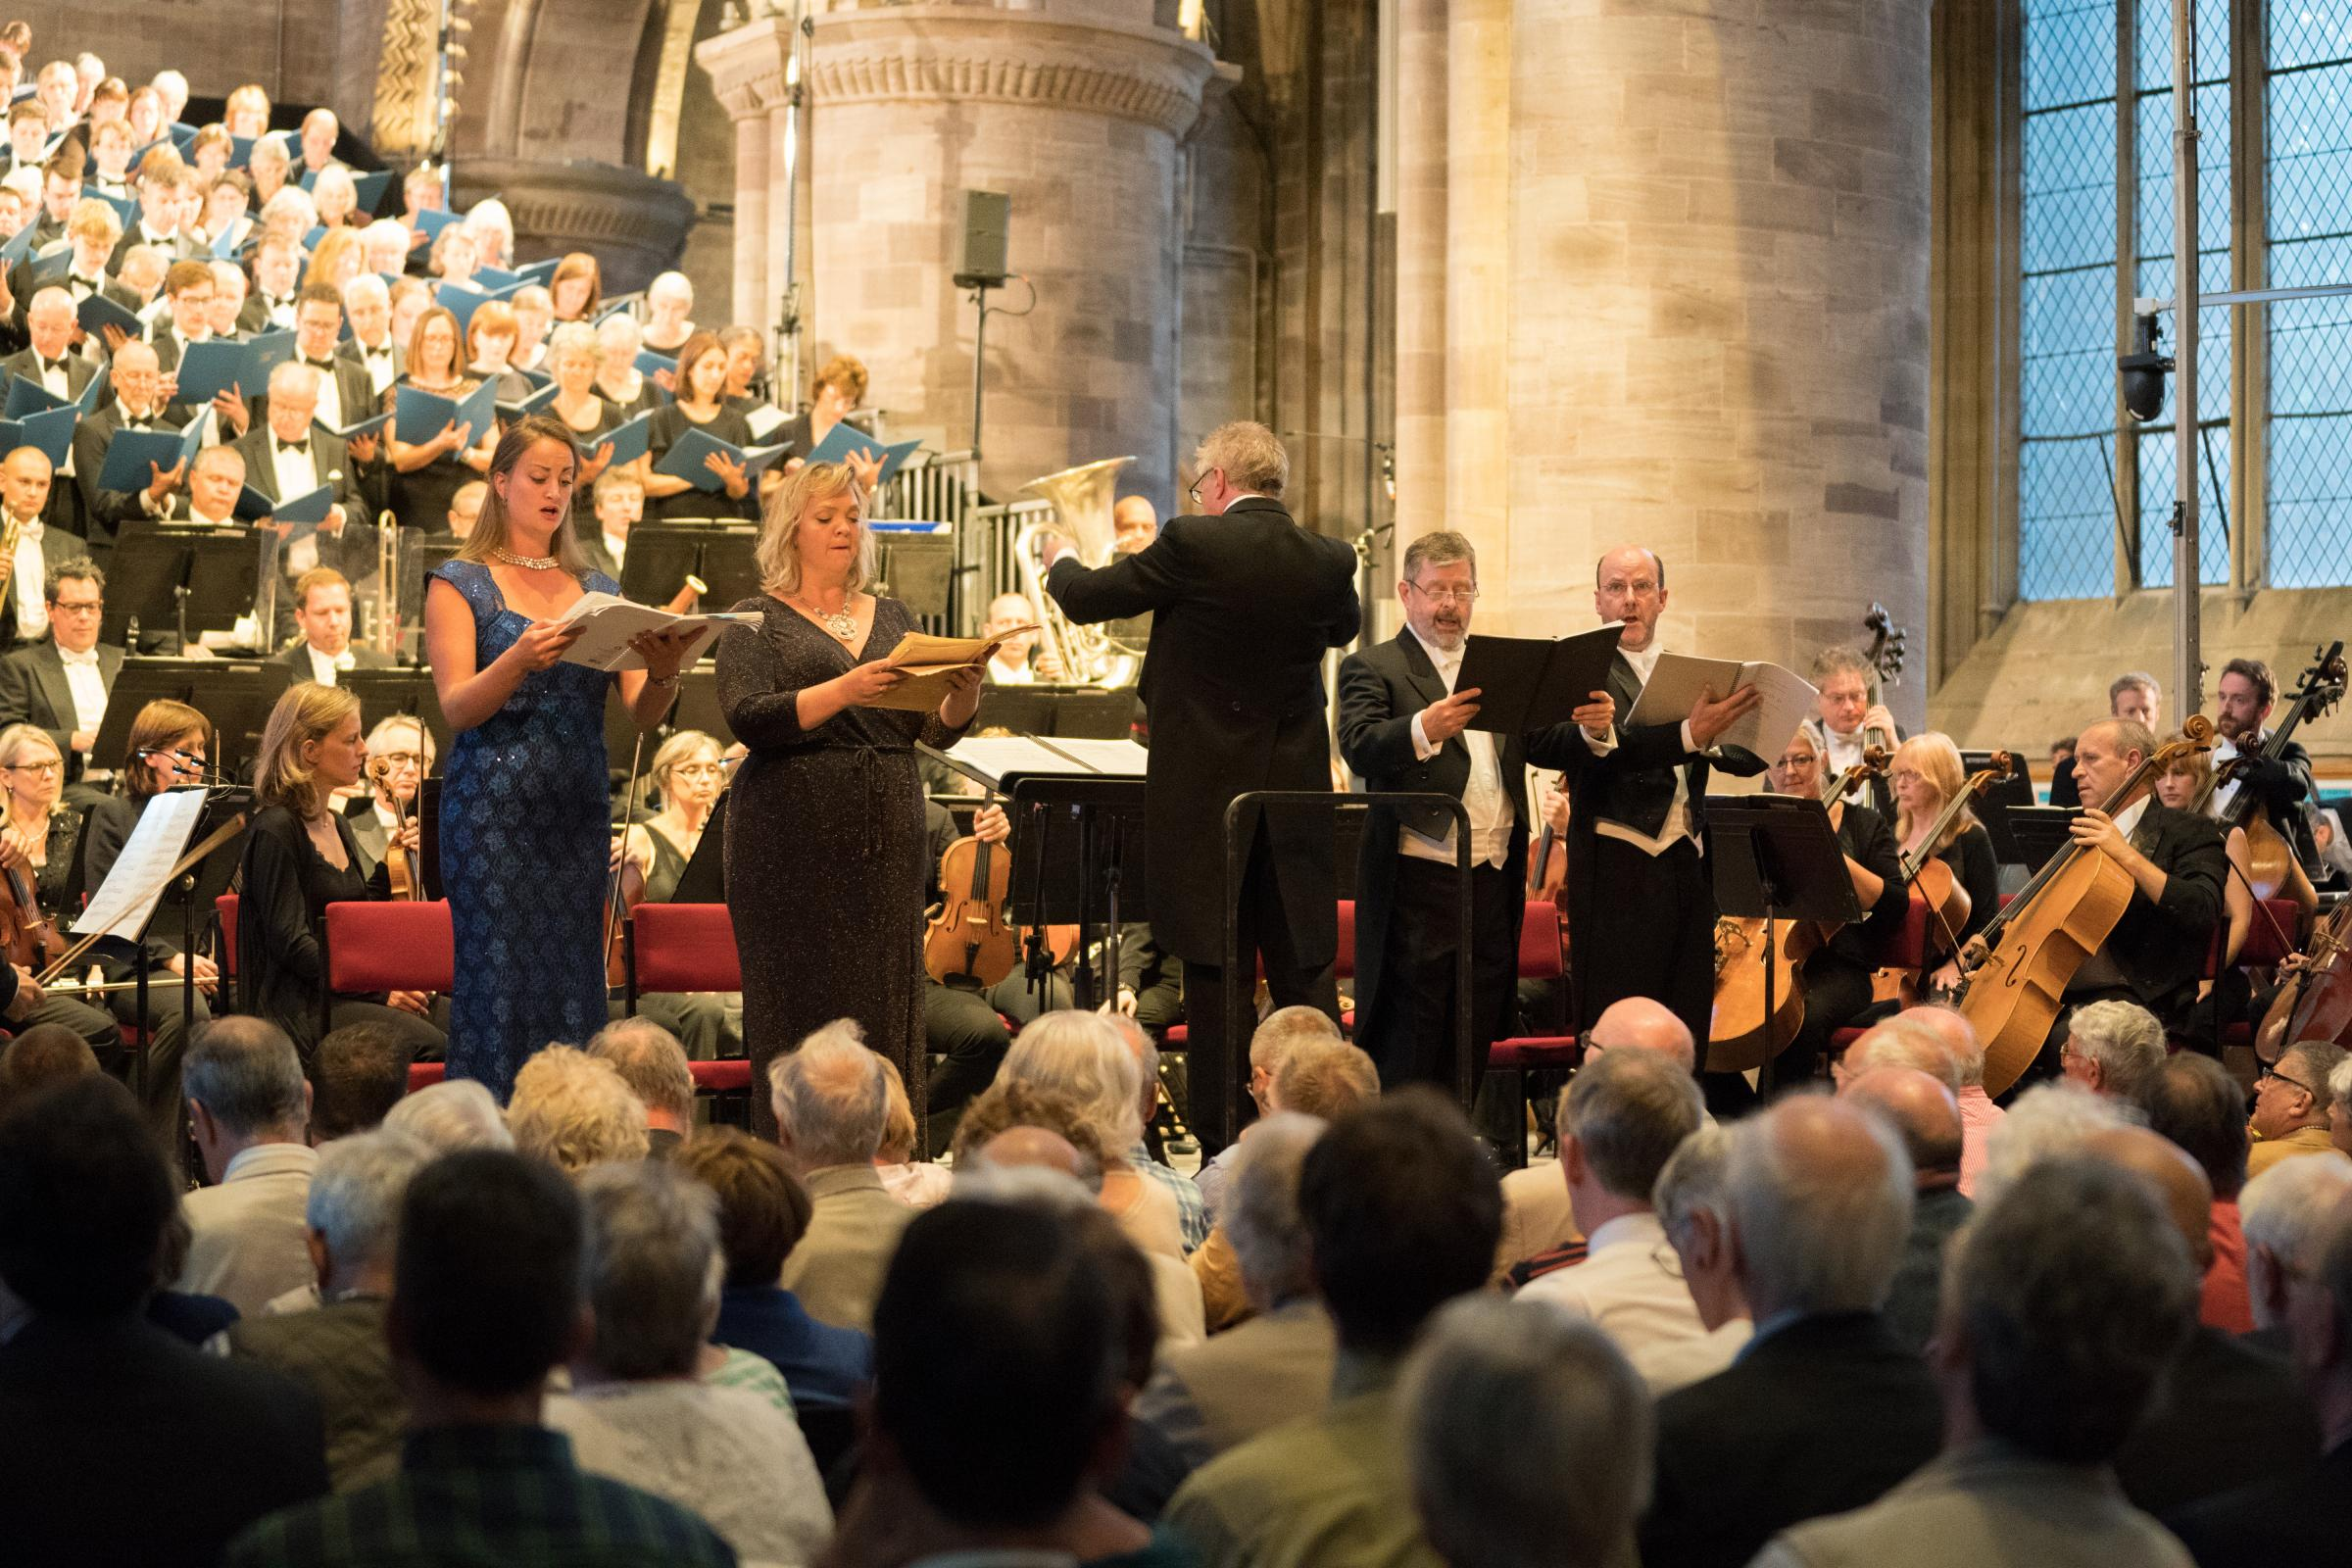 Soloists in the opening concert of the 2018 Three choirs Festival. Picture: Michael Whitefoot